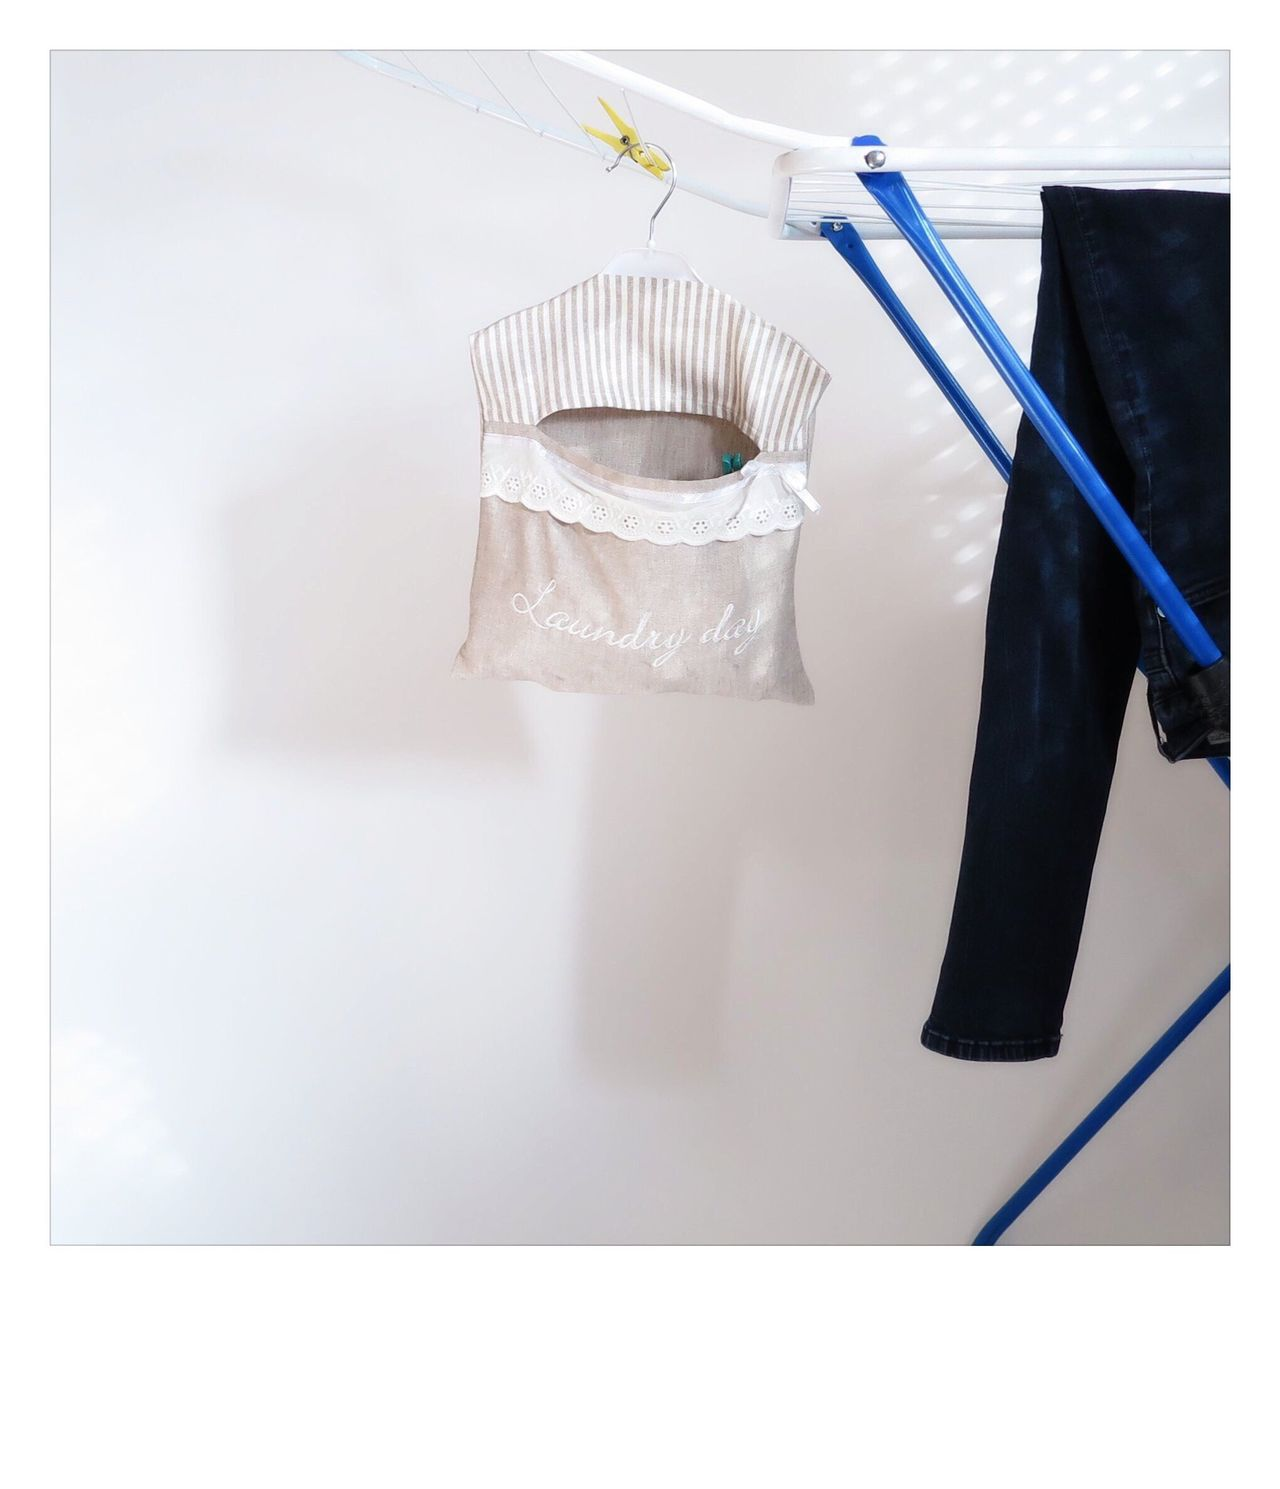 Hanging Indoors  No People Day Lines Wash Clean Fashion Still Life Naturell Glace Jute Directly Above Shabby Chic Vintage Font Text Loop Jeans Laundry Line Laundry Day Laundry Simple Photography Simplicity White Background